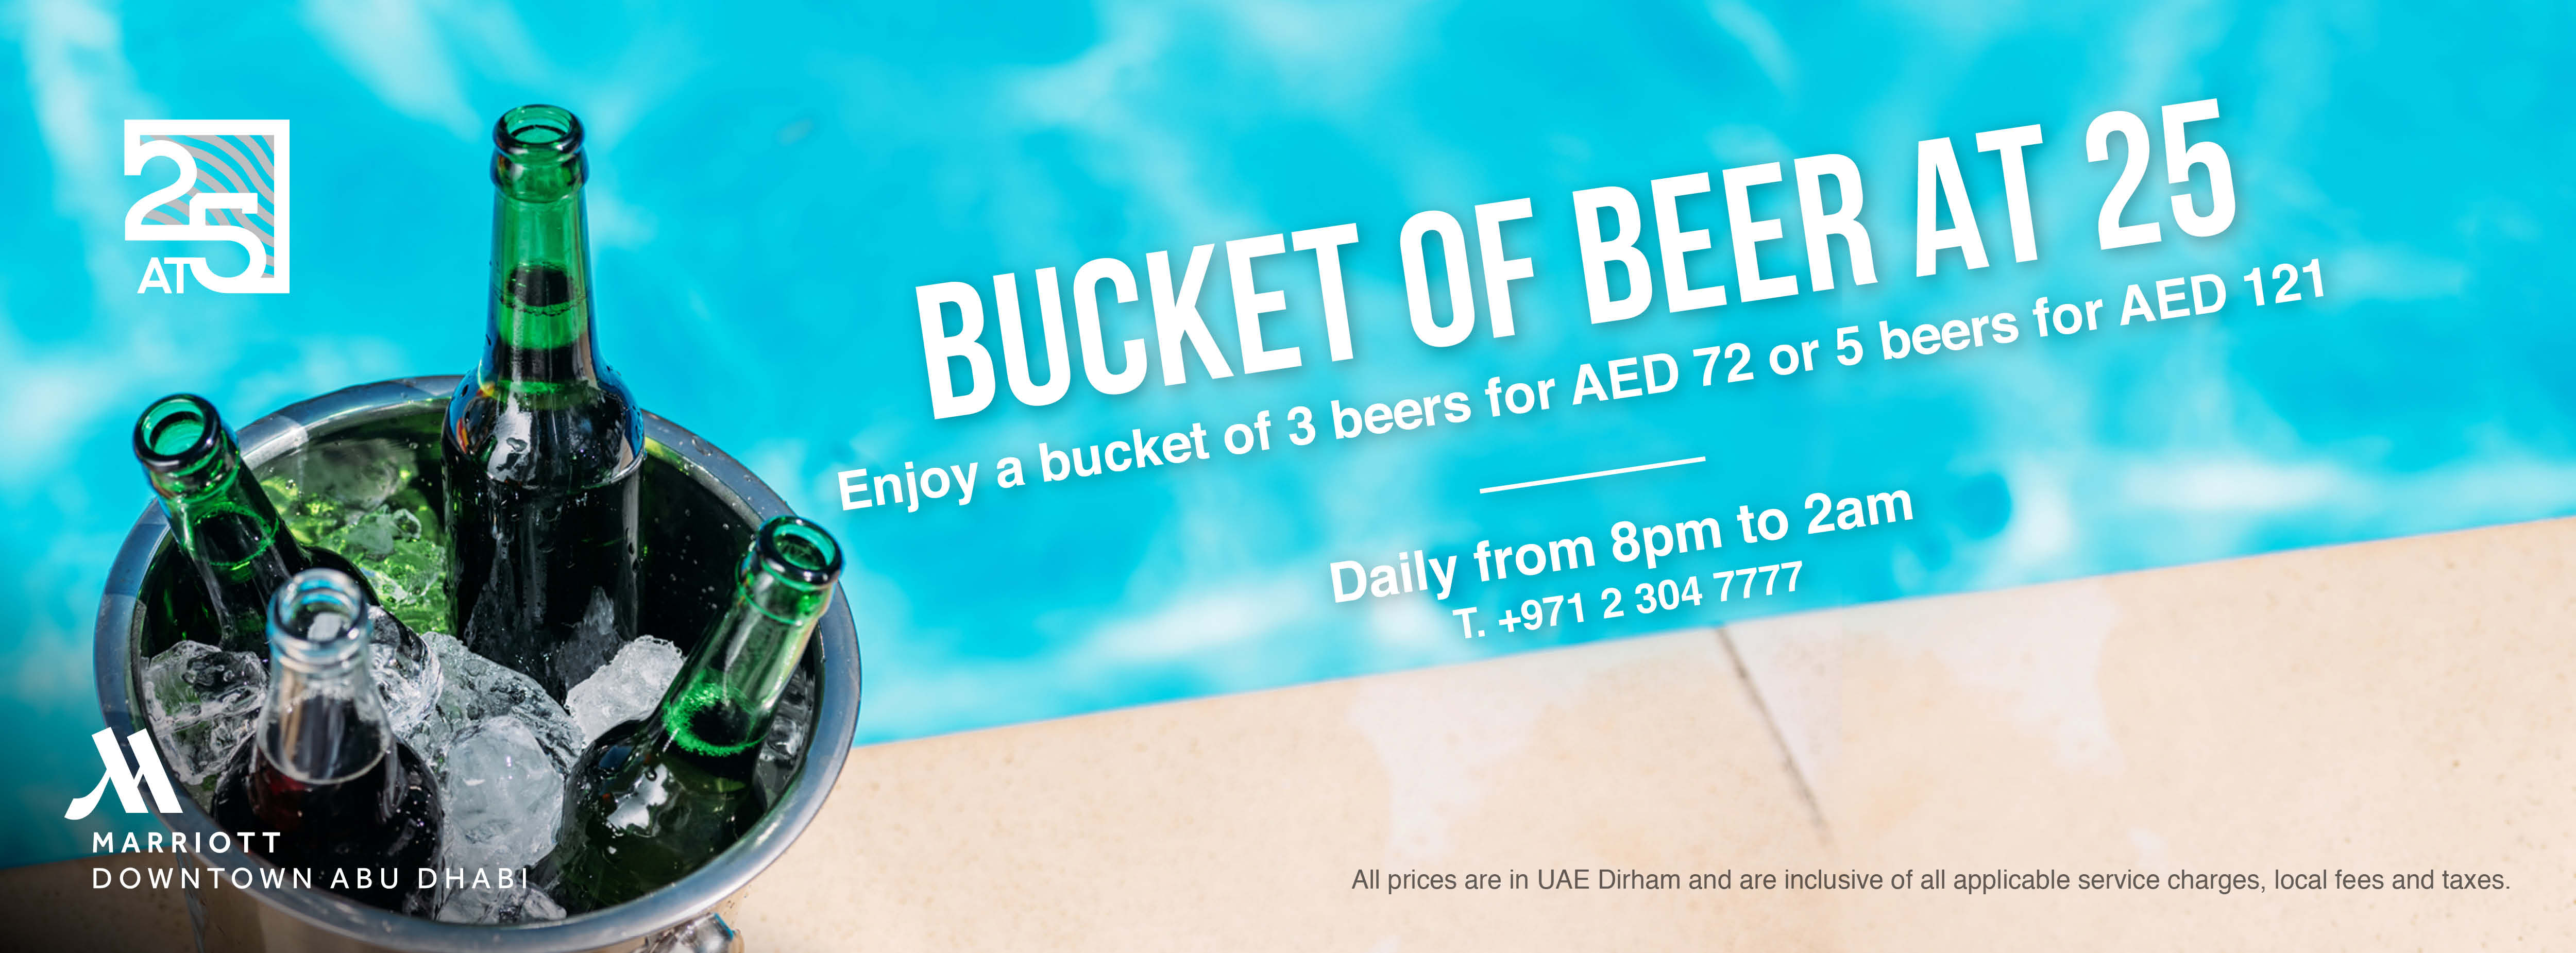 Bucket Of Beer -  At 25